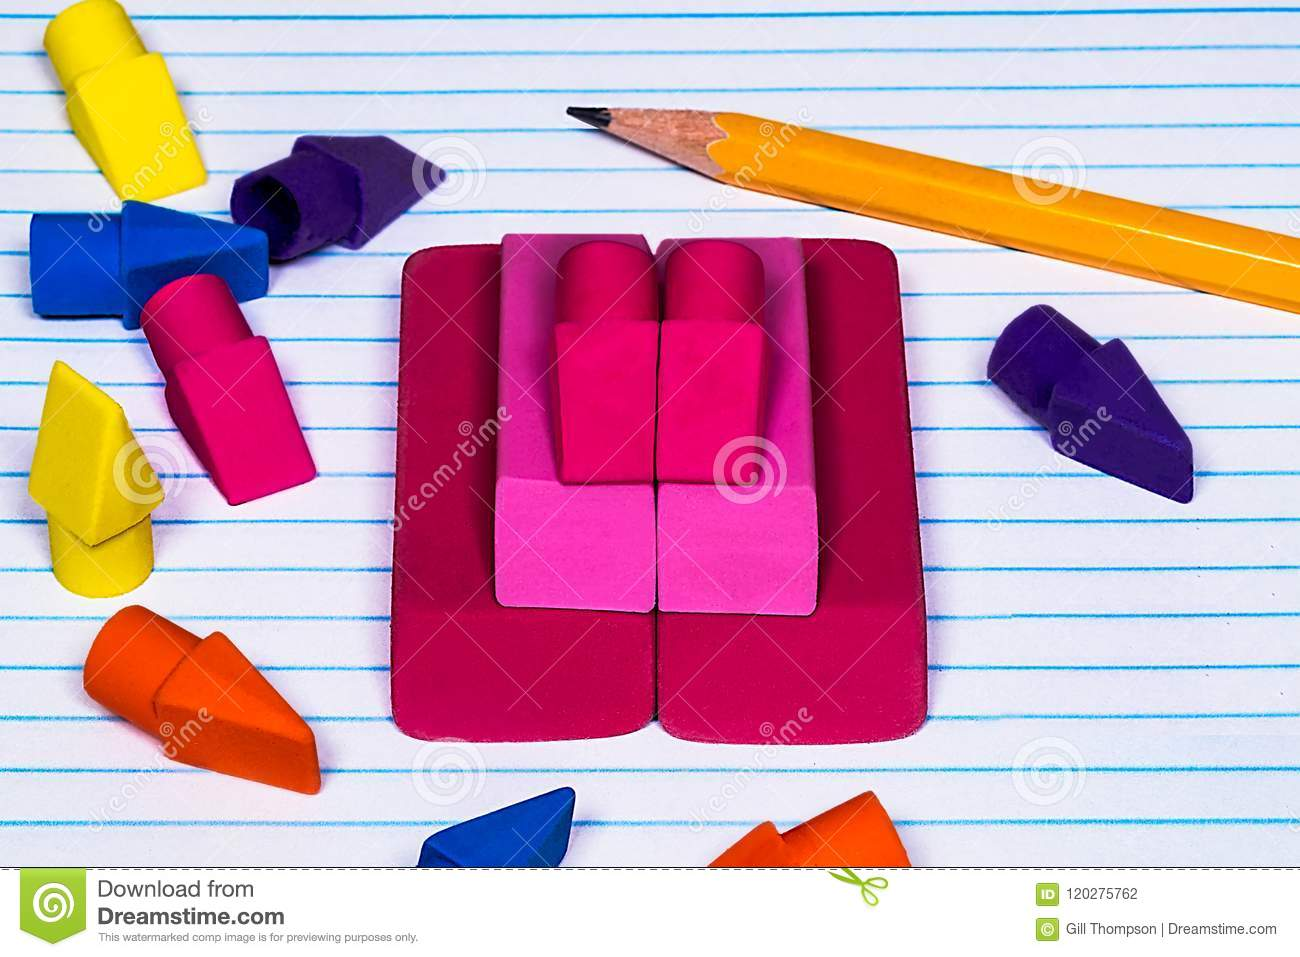 pencil erasers stacked and scattered on college ruled filler pap